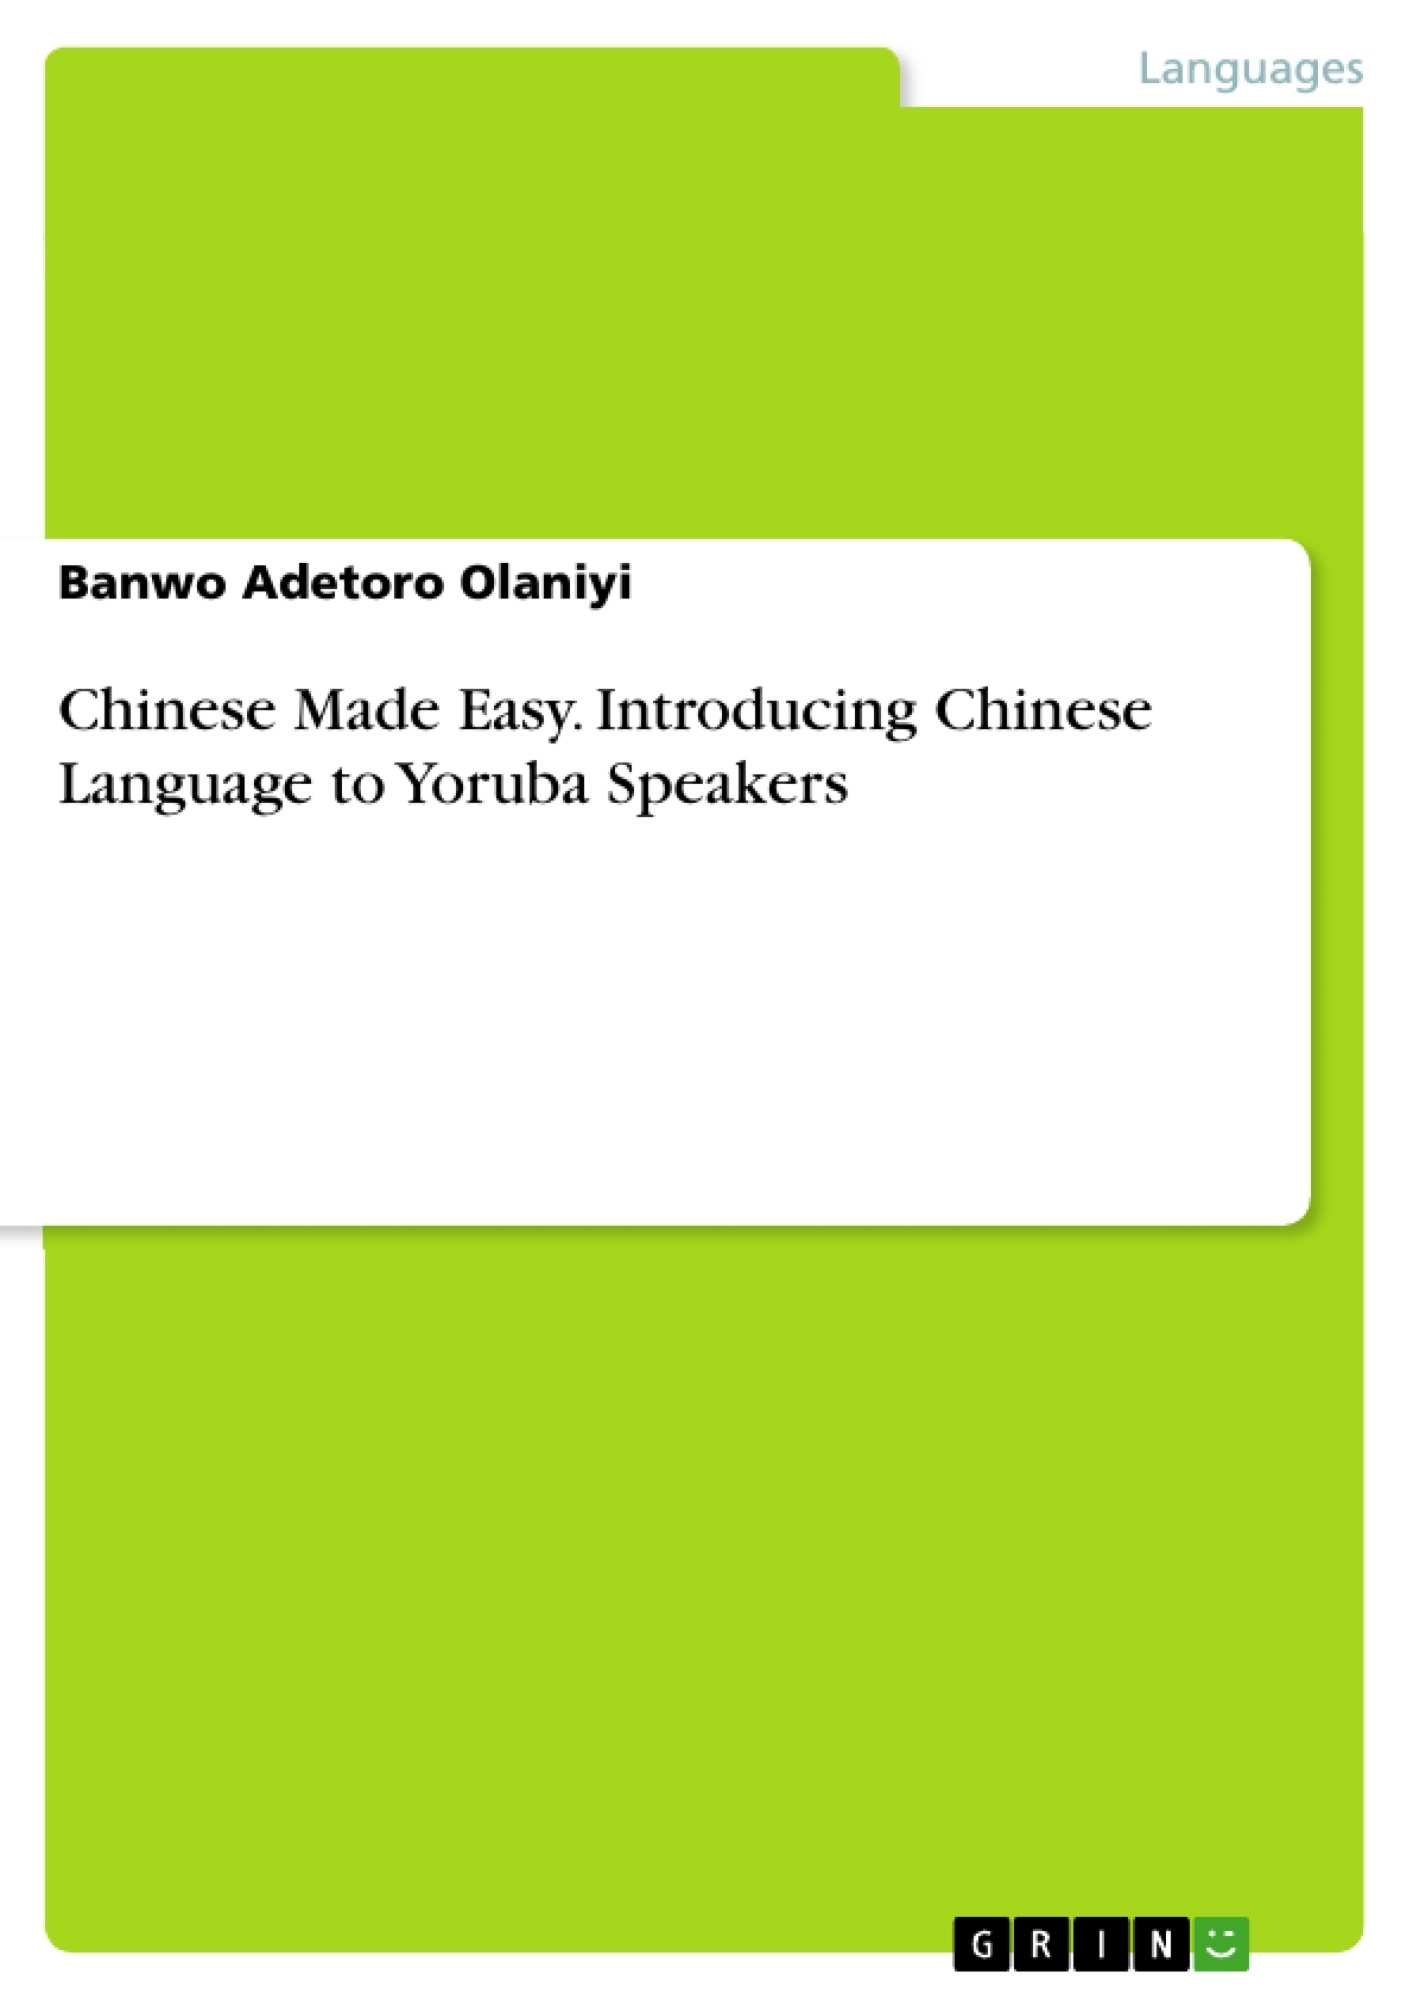 Title: Chinese Made Easy. Introducing Chinese Language to Yoruba Speakers